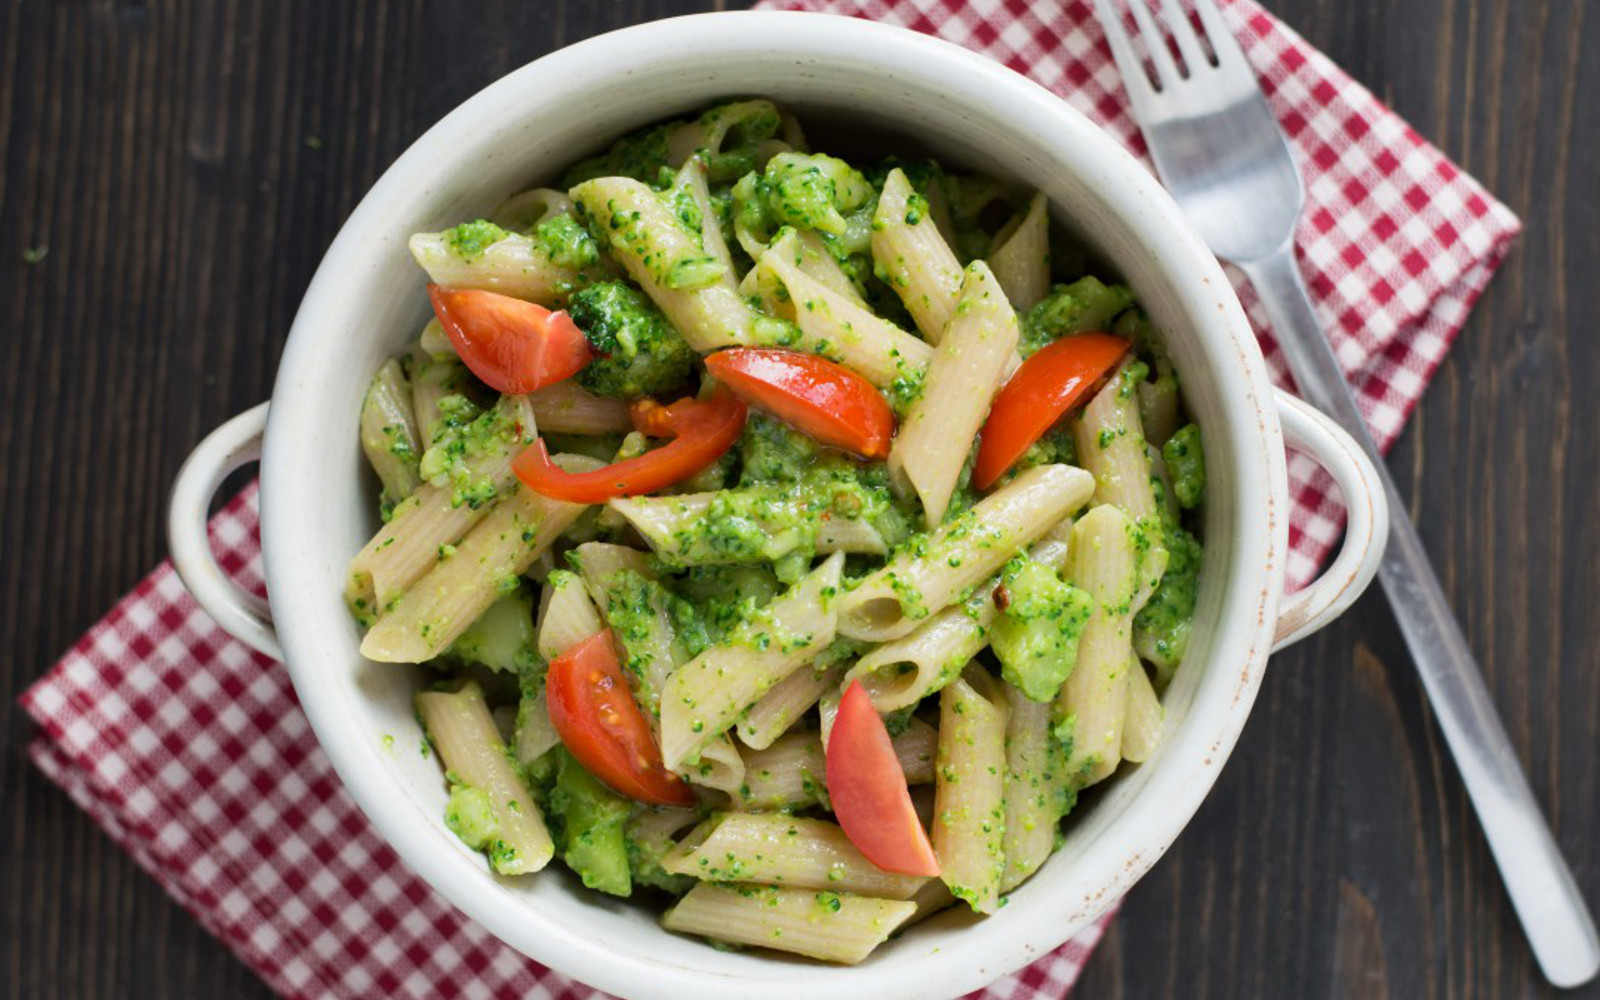 penne with broccoli chili and capers